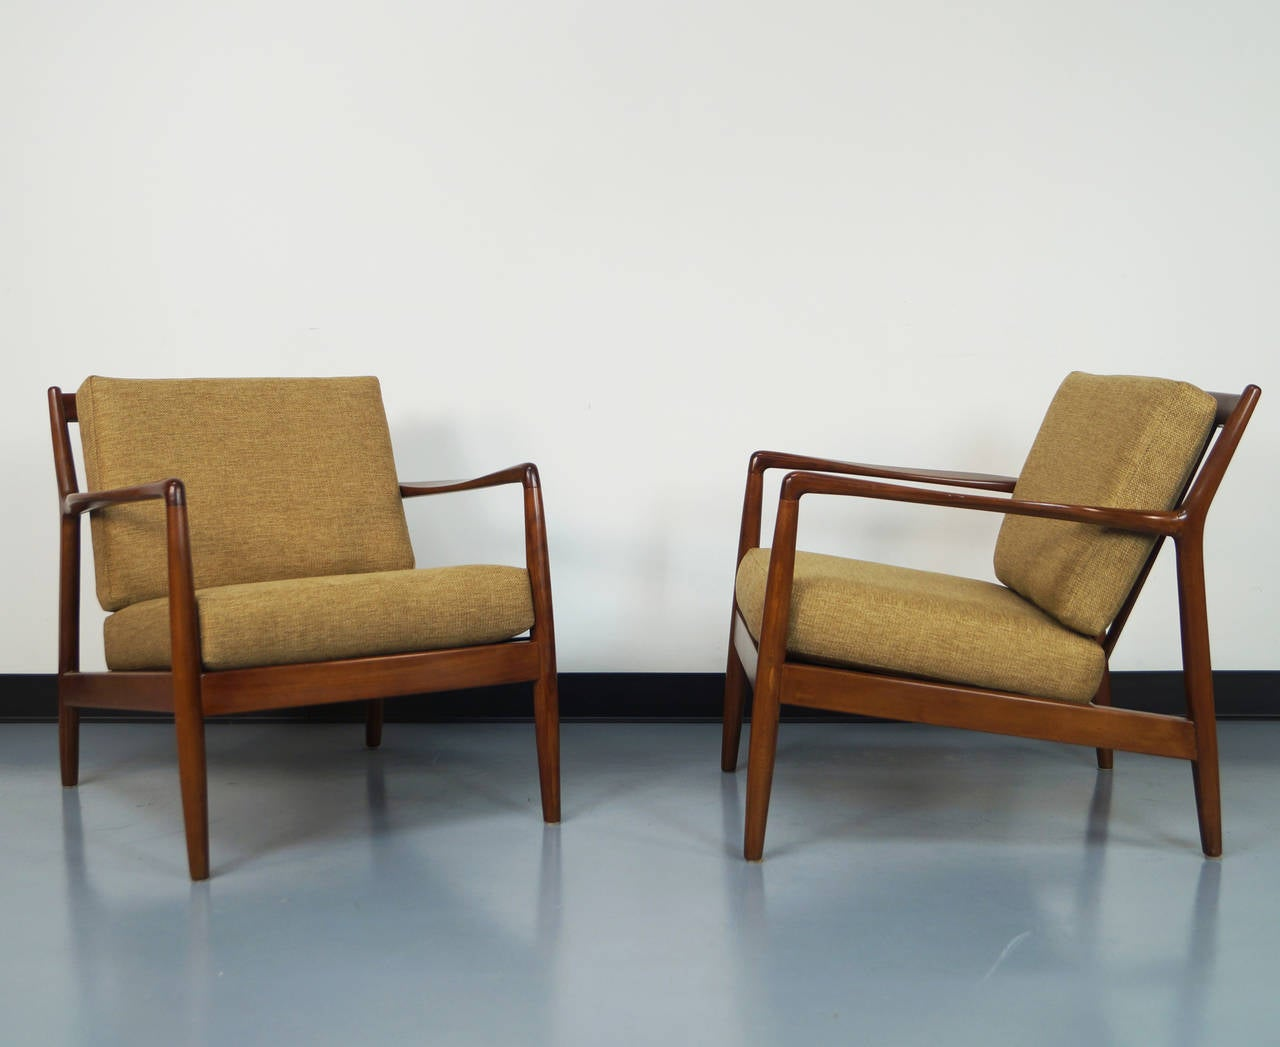 Midcentury Chairs Mid Century Lounge Chair By Folke Ohlsson At 1stdibs